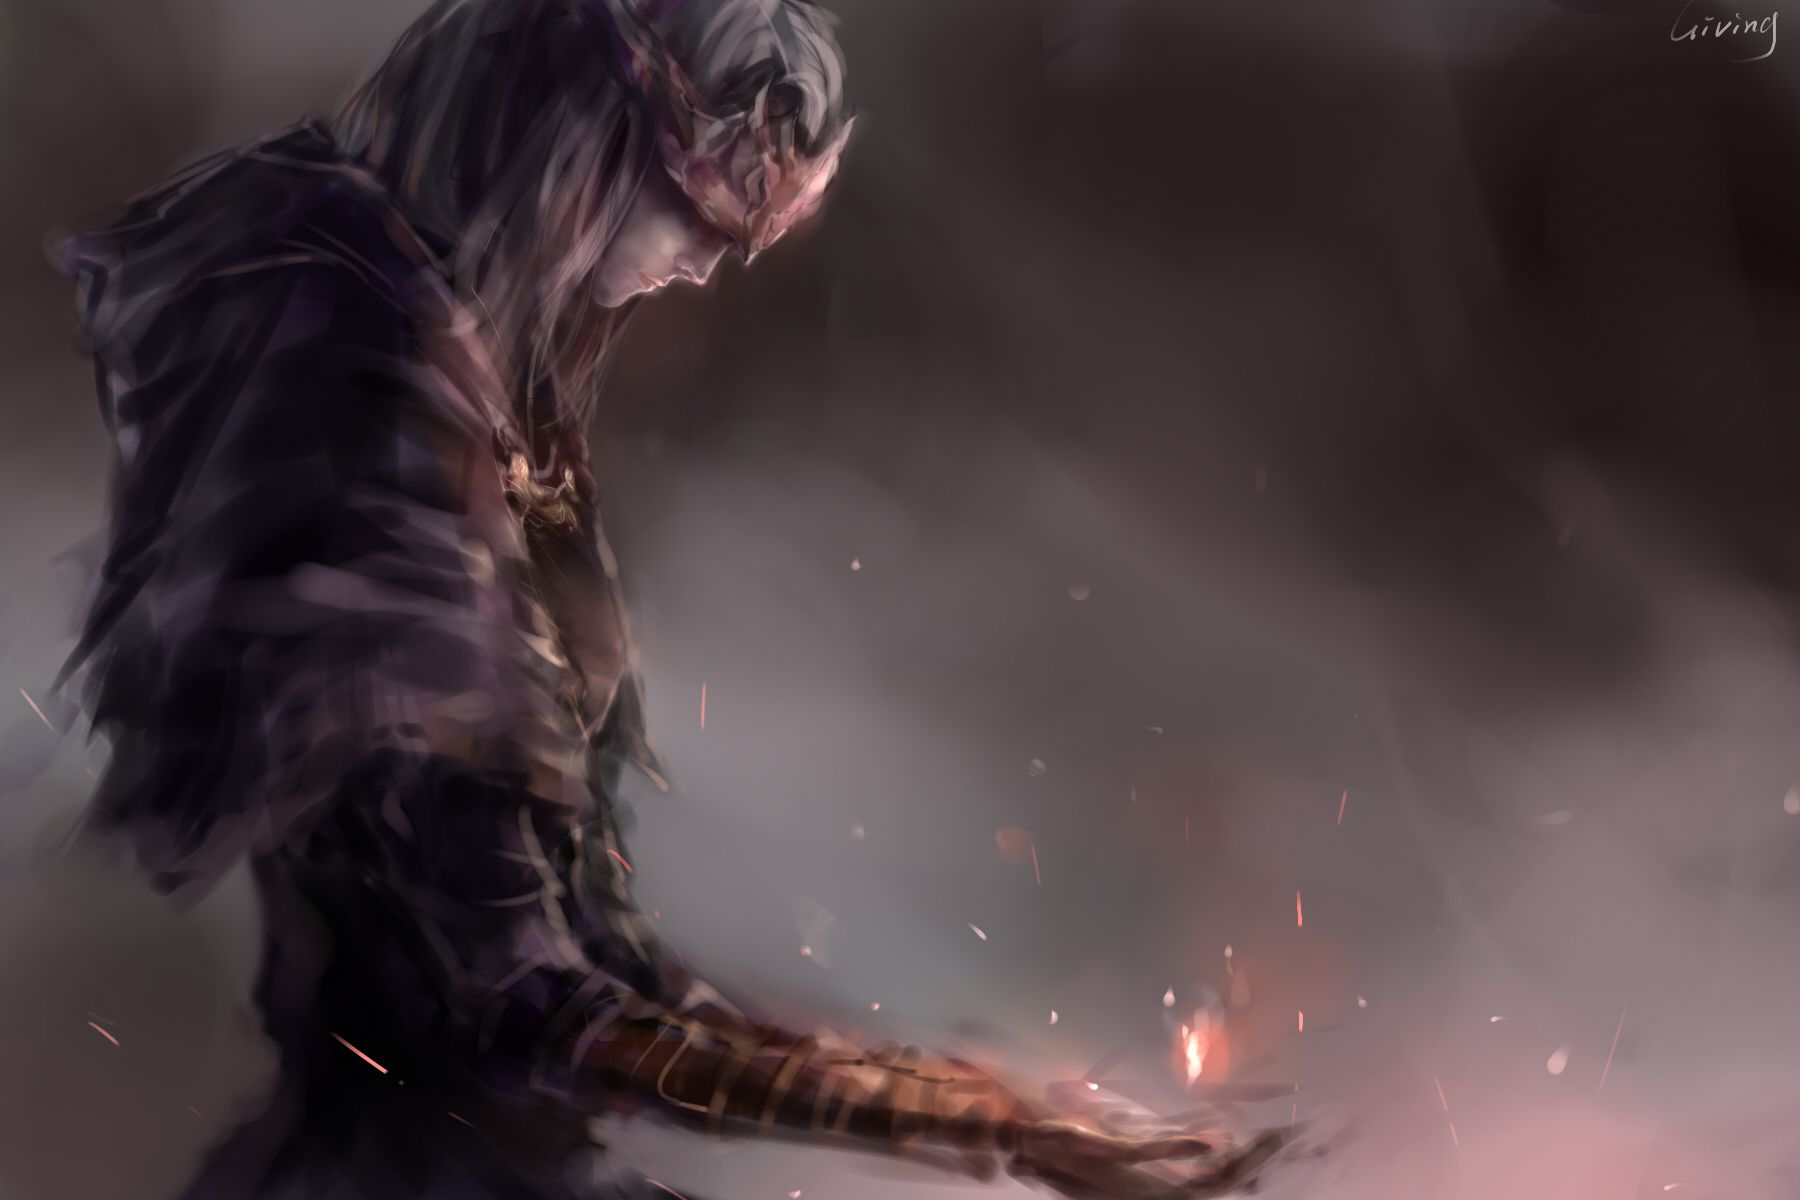 Download Fire Keeper Wallpaper For Any Of Your Devices From Our Dark Souls Collection Let This 4K HD Inspire You